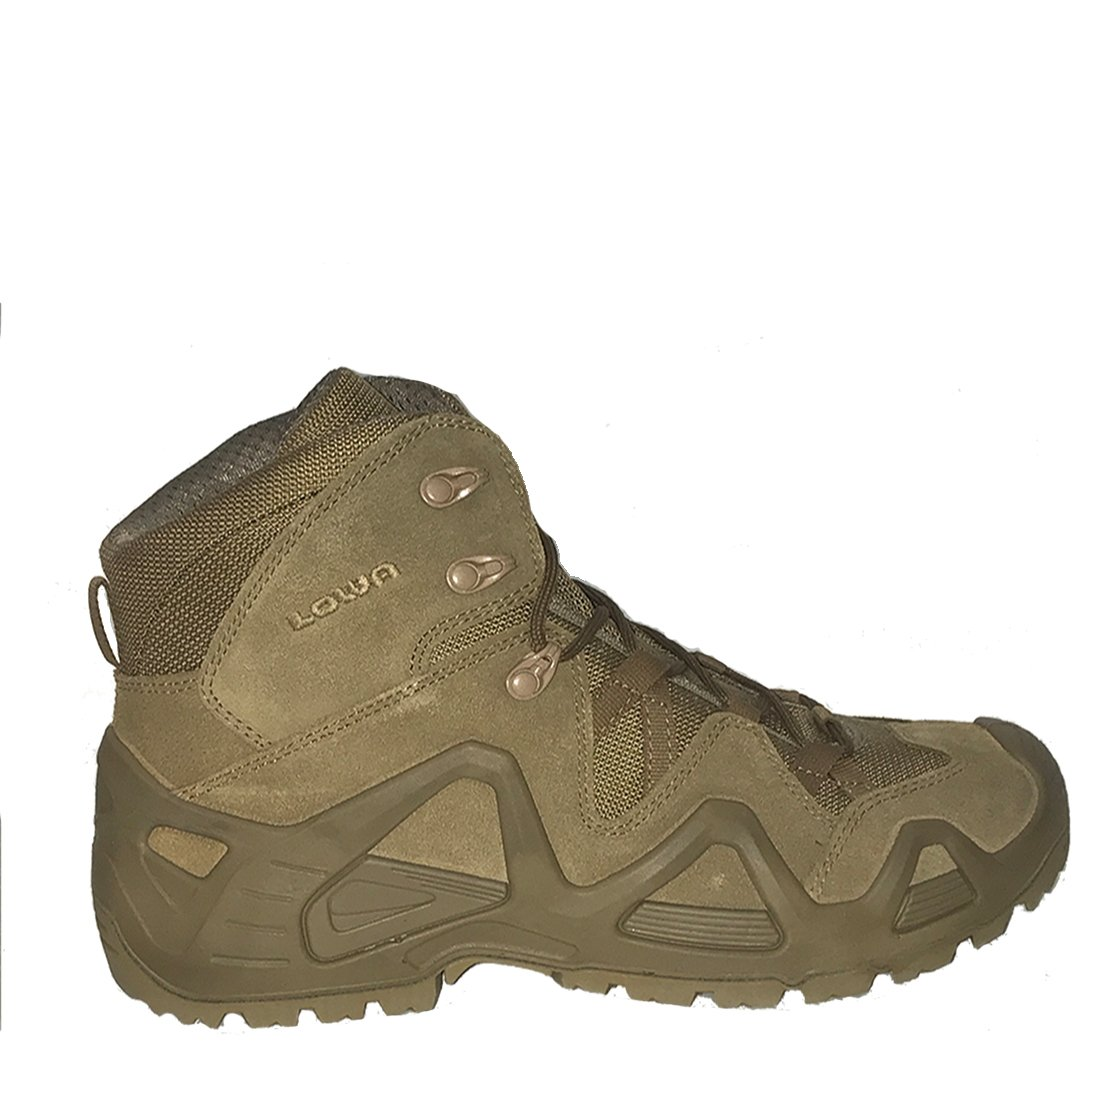 Lowa Mens Zephyr Boots Coyote